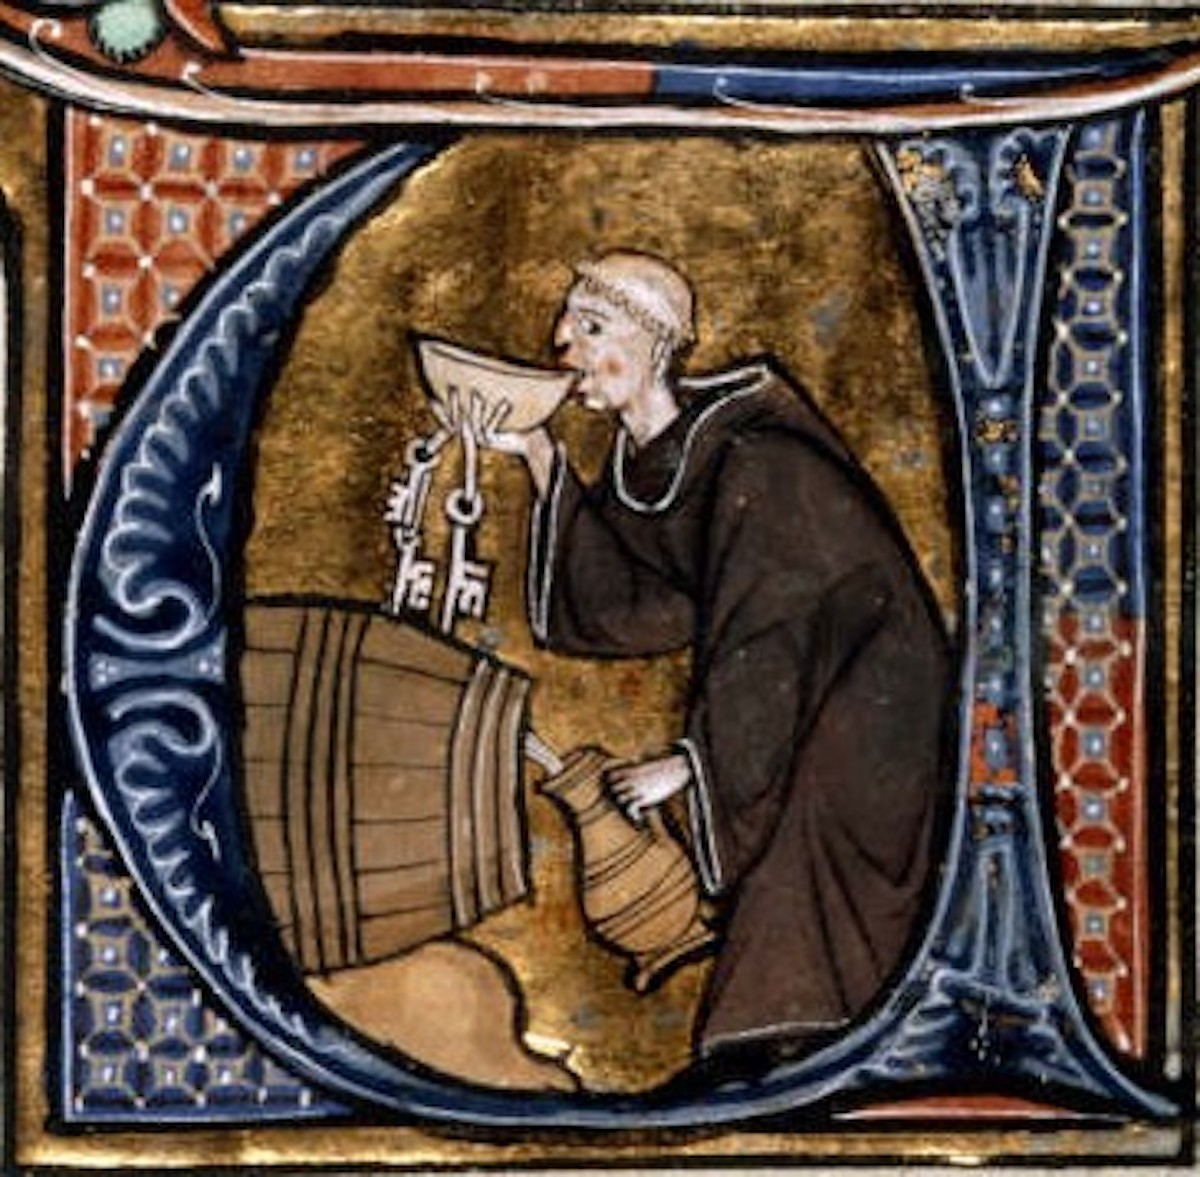 medieval monk tasting alcohol